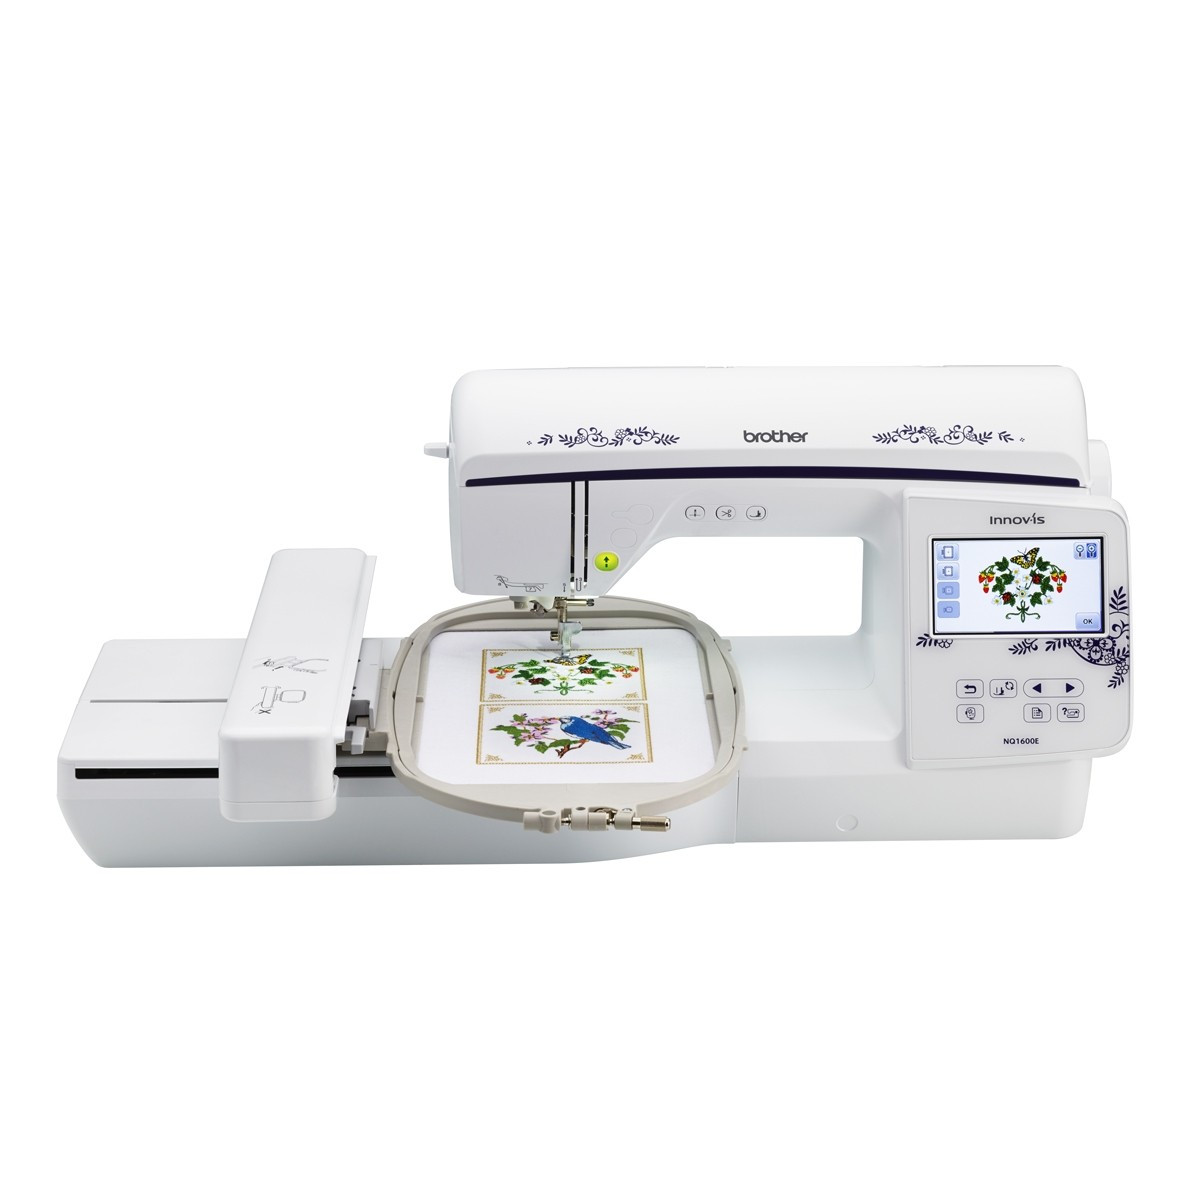 Embroidery Machine Lovely Brother Innov is Nq1600e Embroidery Machine Of Innovative 43 Pictures Embroidery Machine